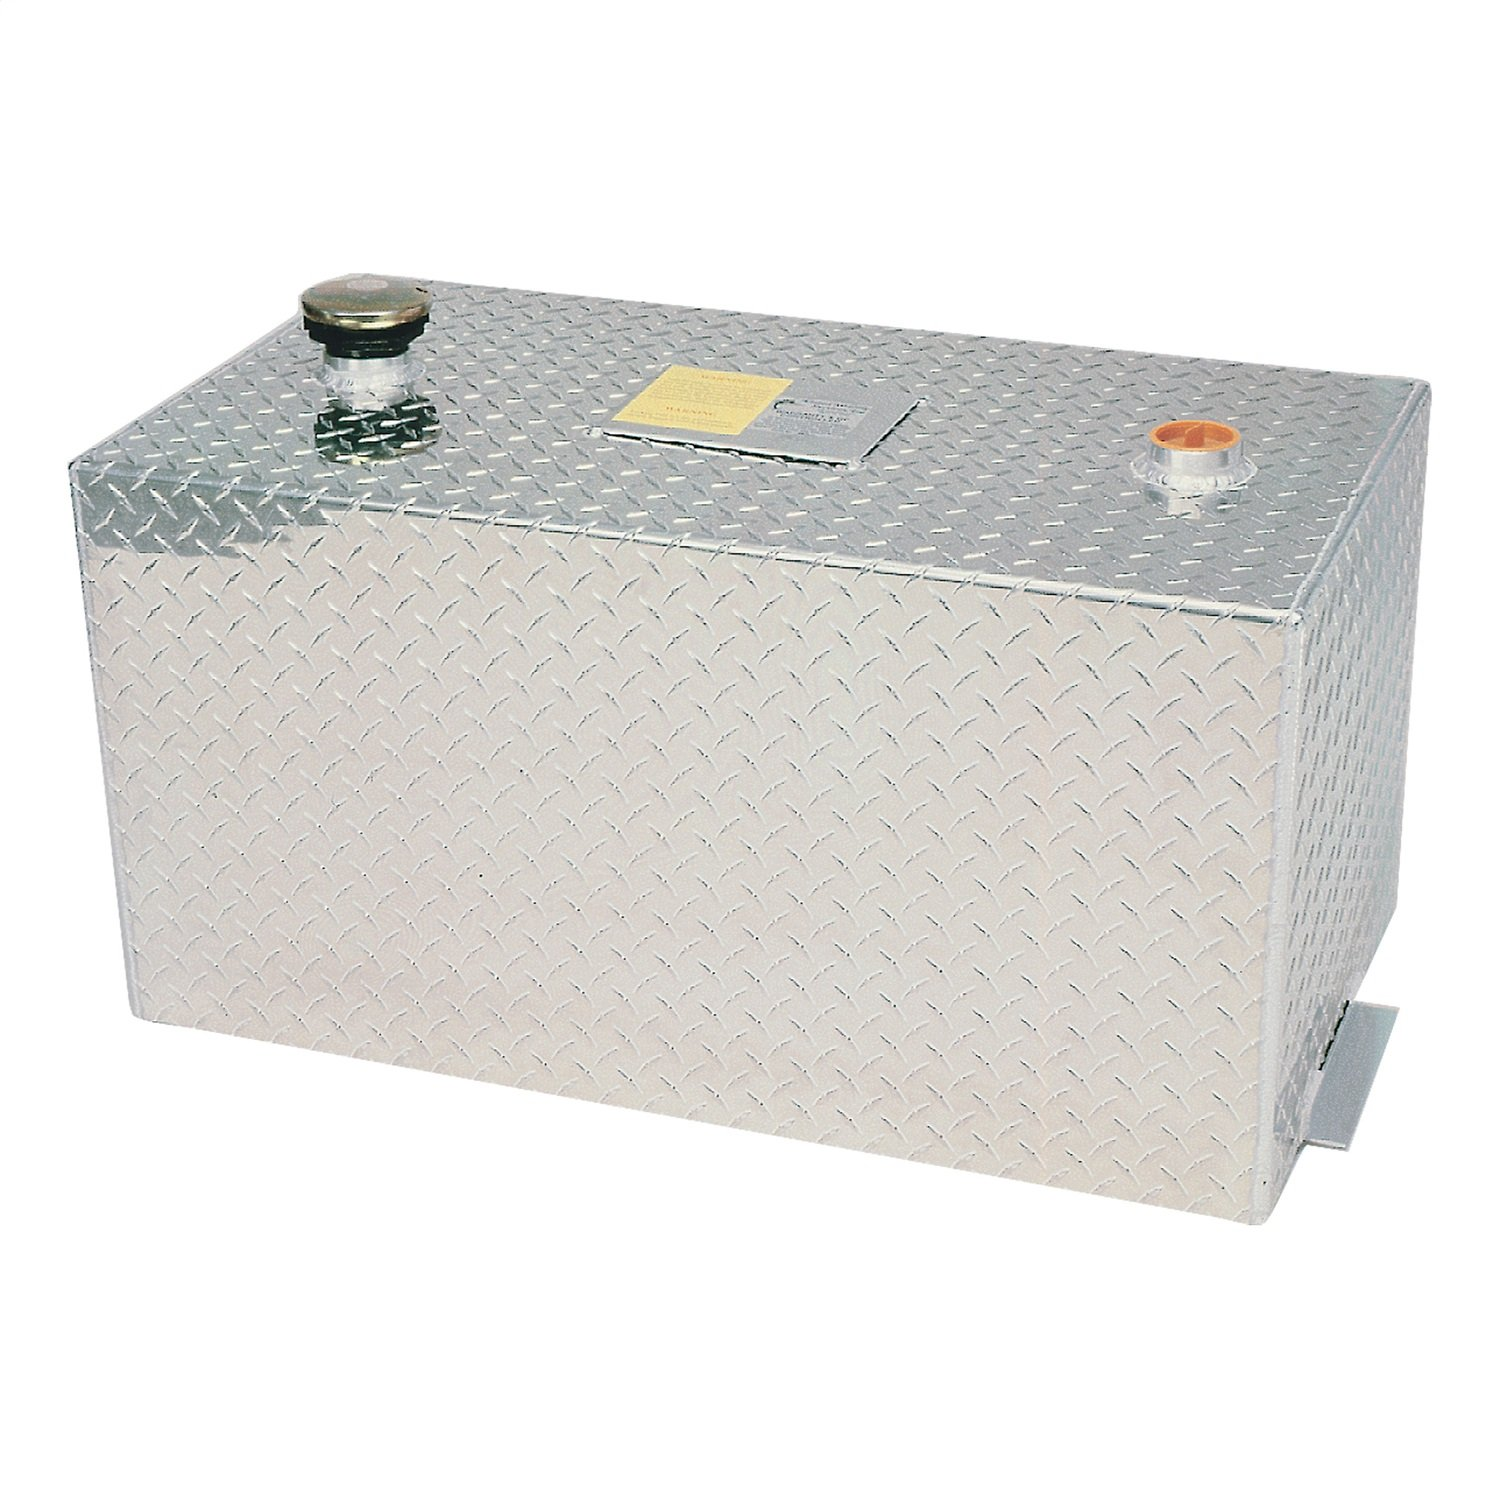 UWS TT-100-R-T/P 100 Gallon Rectangular Transfer Tank by UWS